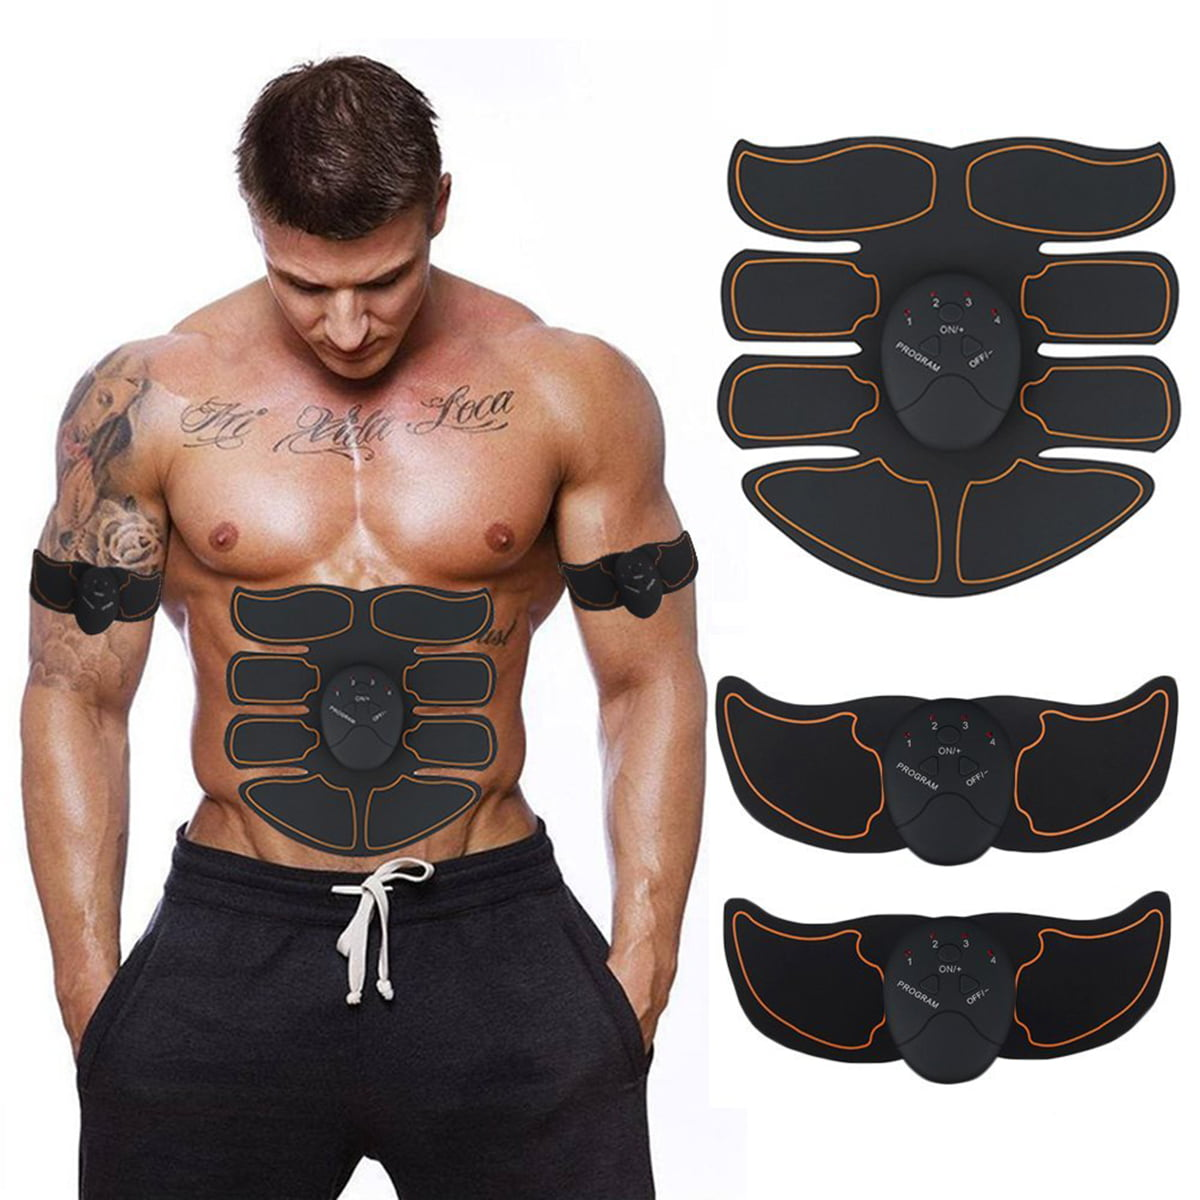 Details about  /Women Special EMS Smart ABS Abdominal Muscle Exercise Body Fitness Equipment